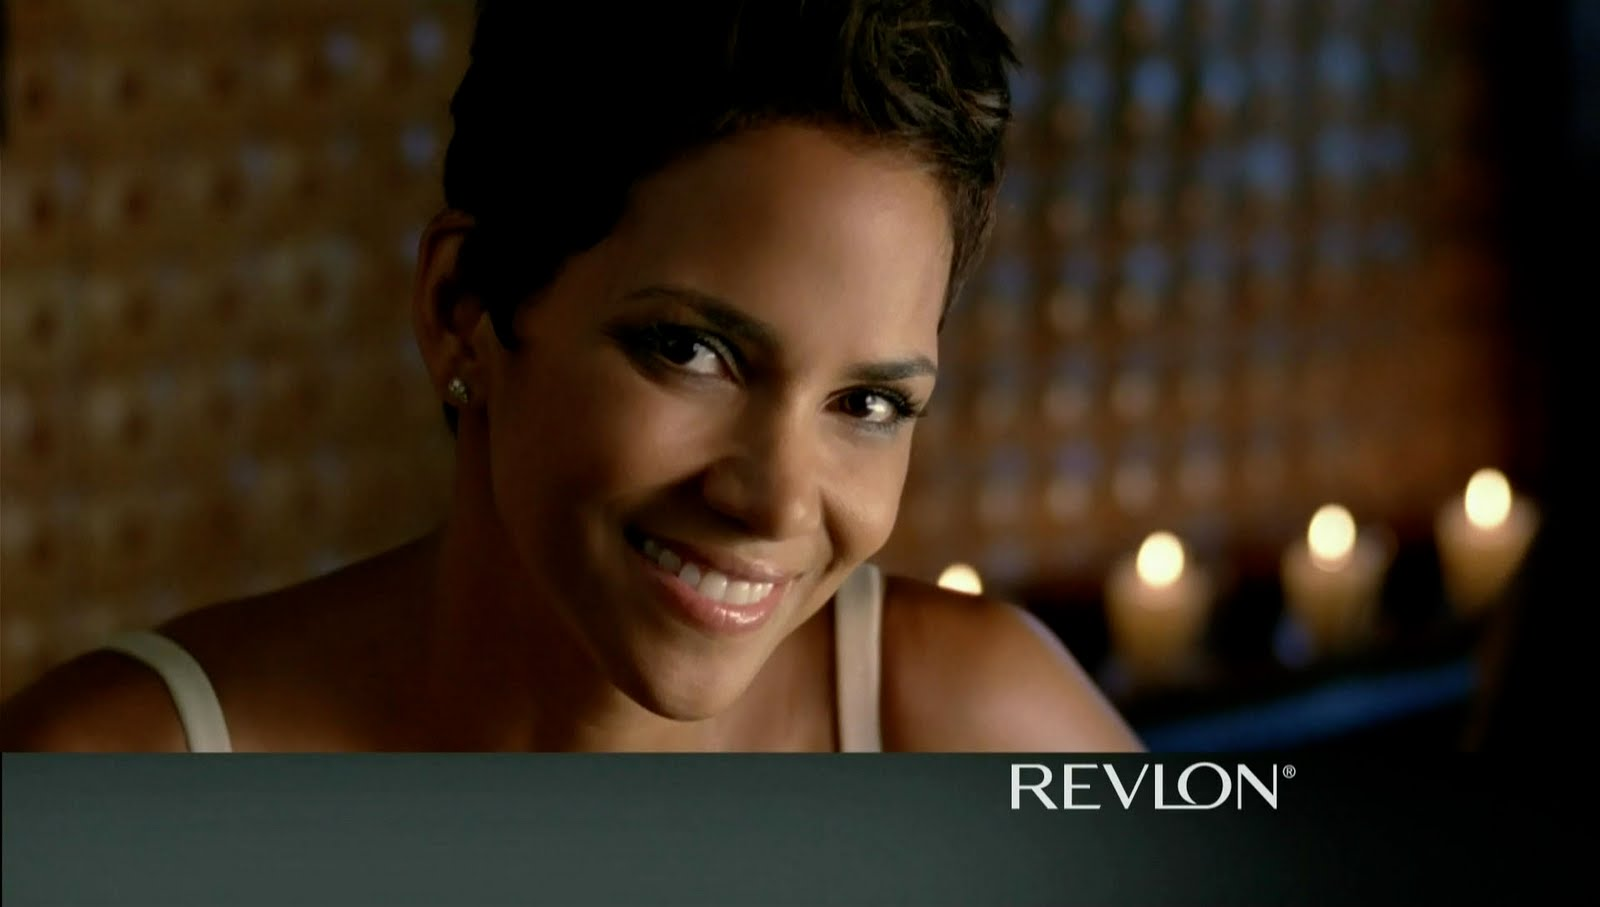 Halle Berry Has Hot Problems - Angry Mob Music